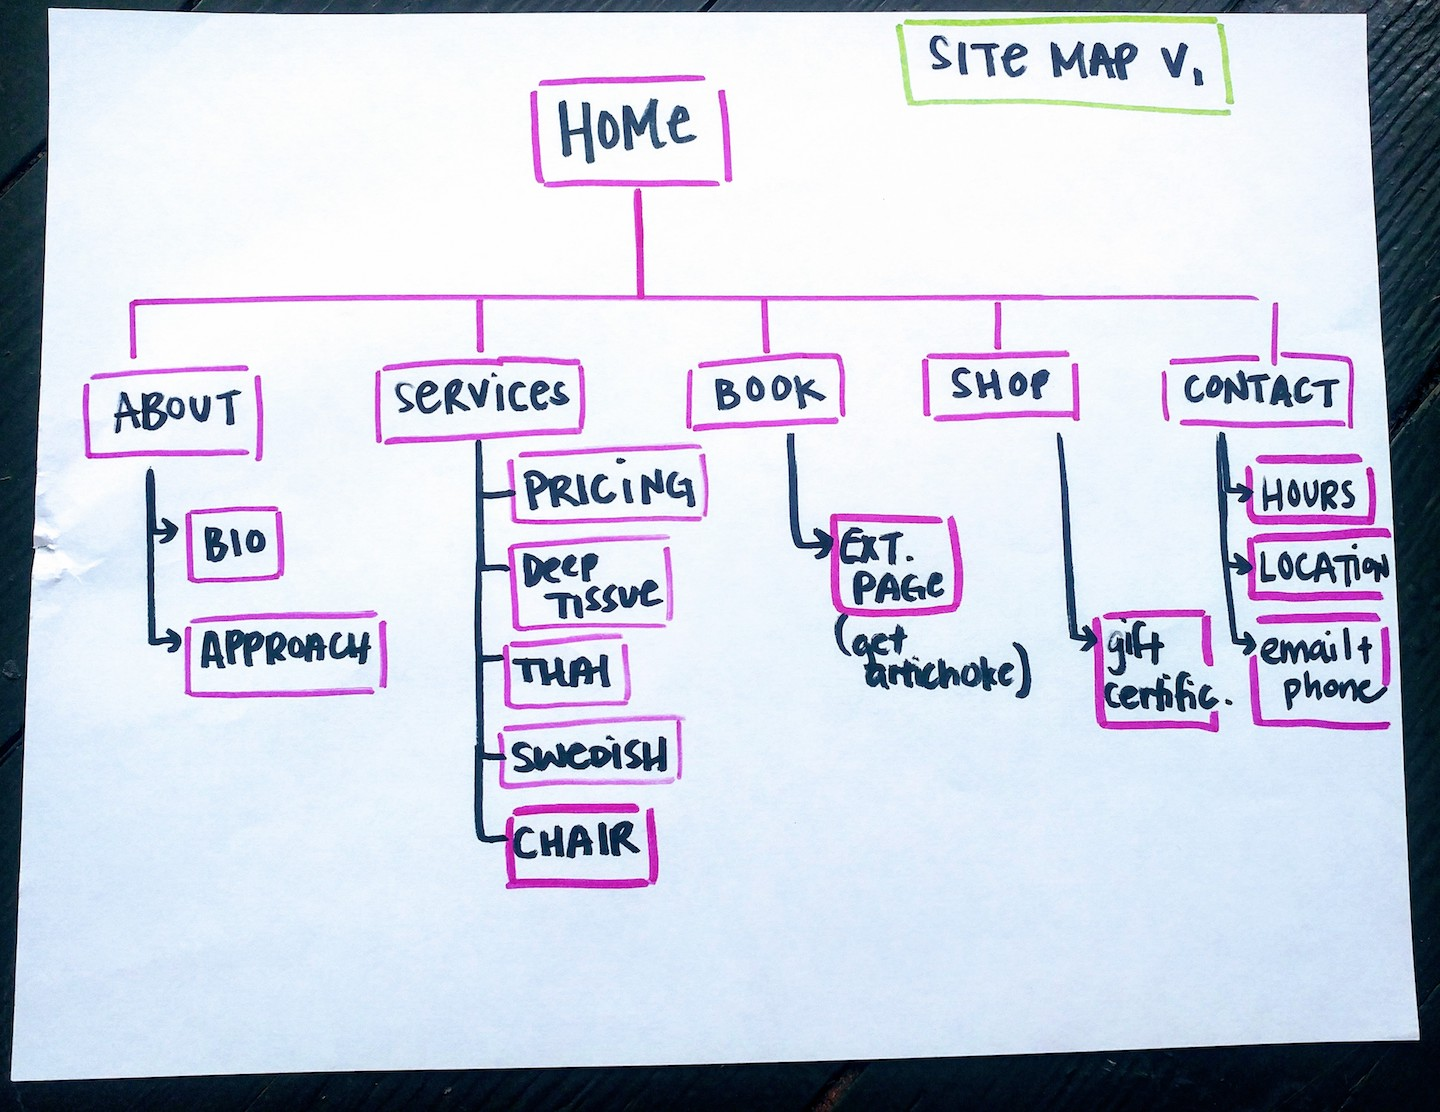 Hand-drawn diagram showing a hierarchy of site pages.